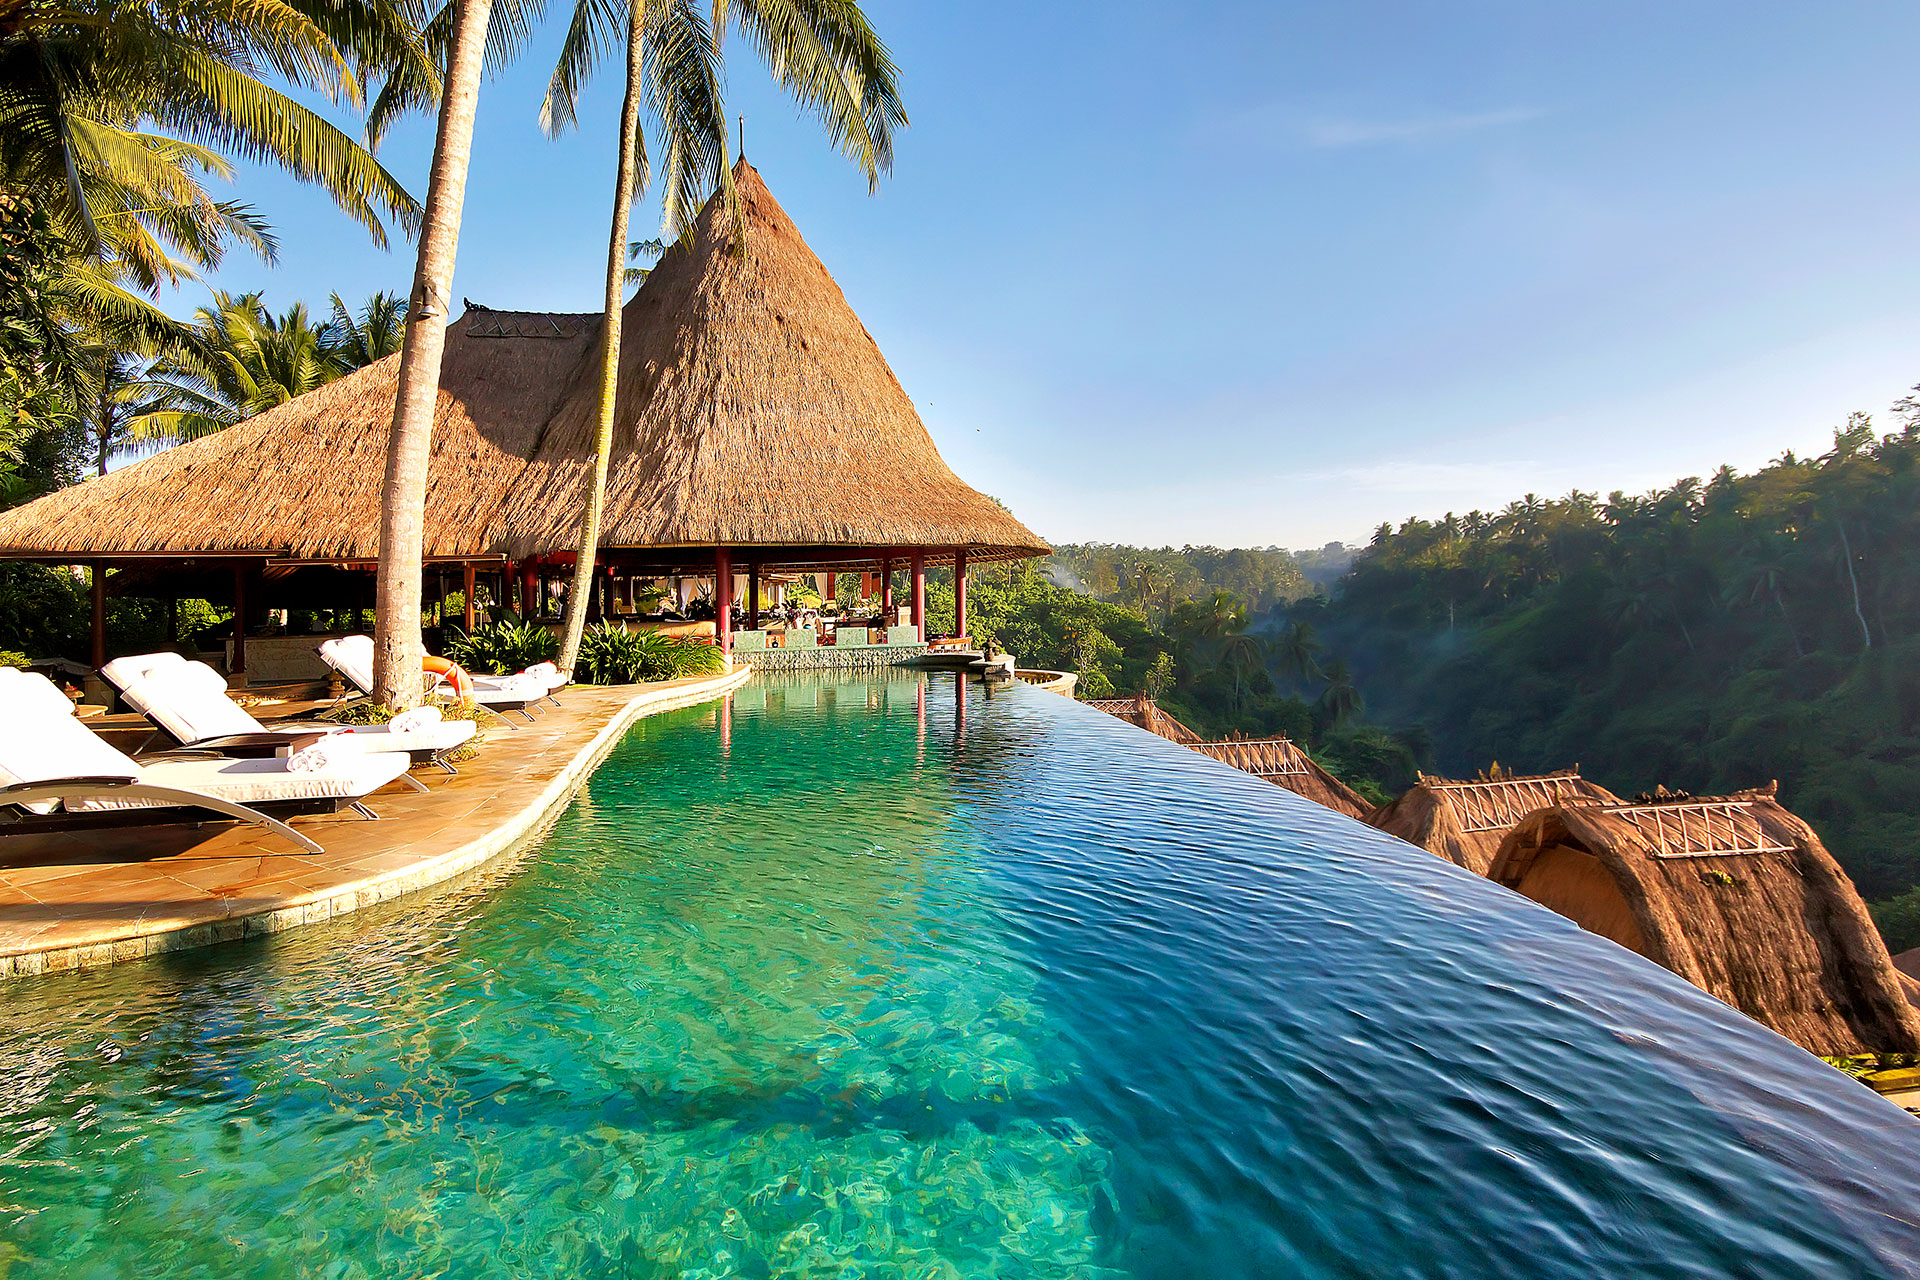 Viceroy Bali - boutique hotel in Ubud